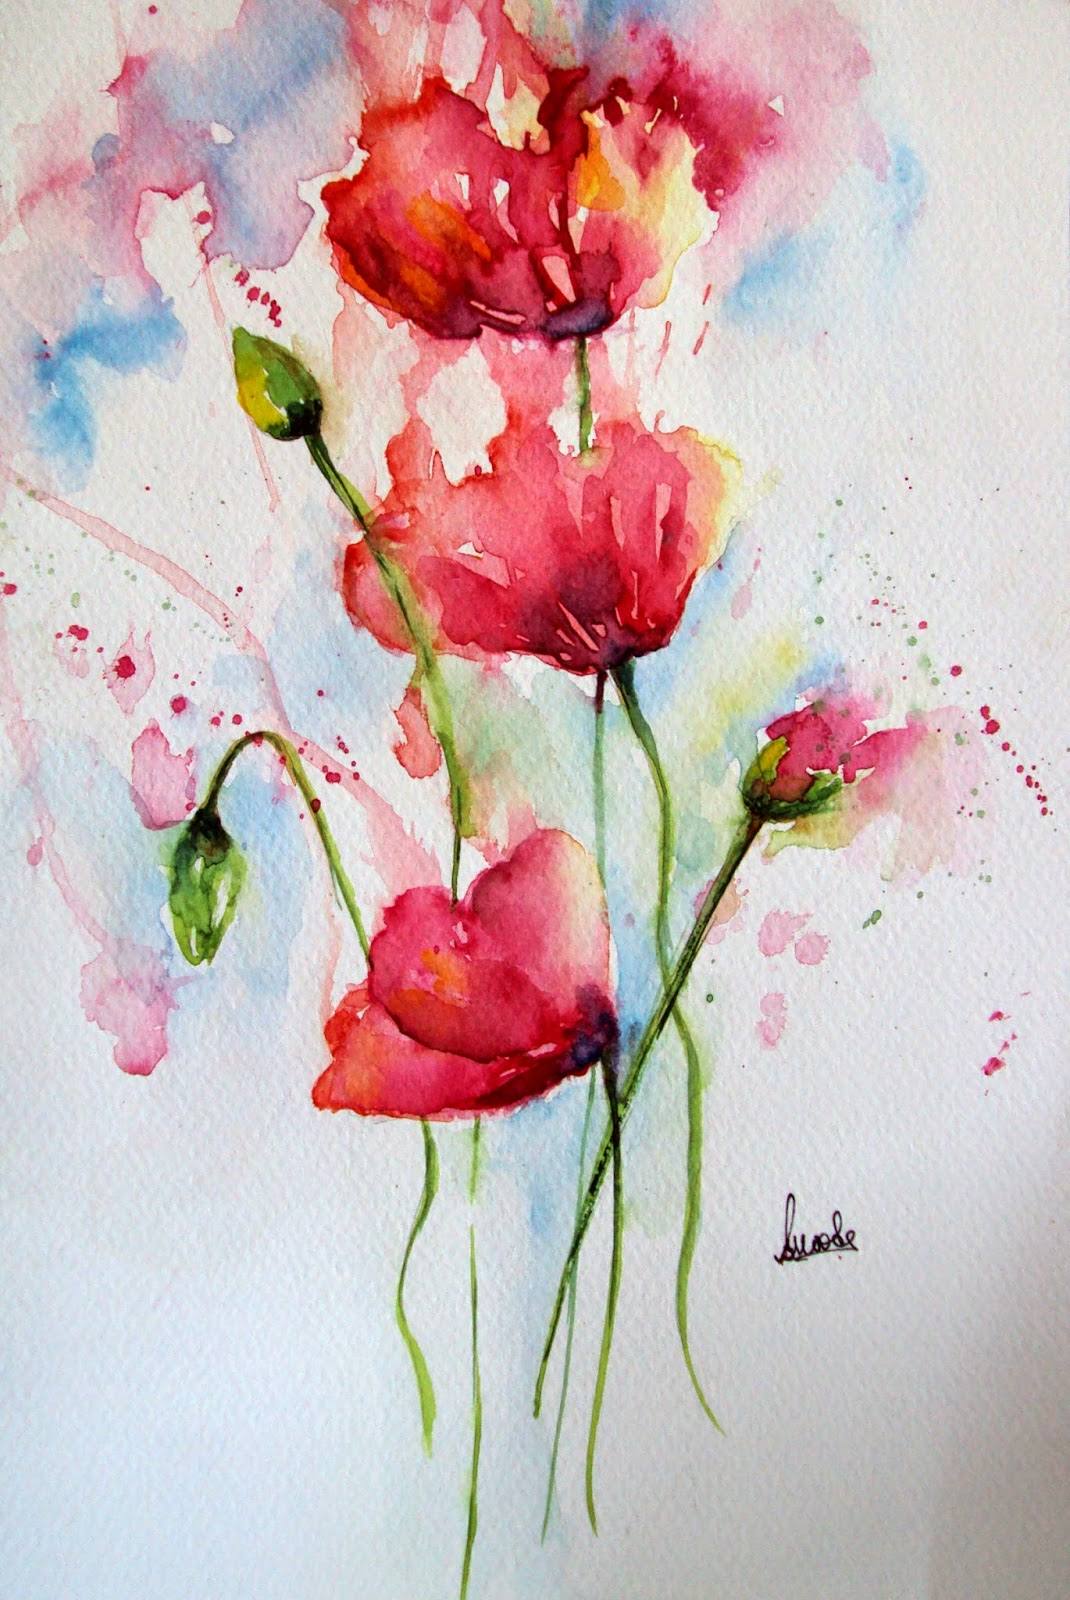 Poppy, poppies, flowers, floral, watercolor, watercolour ...